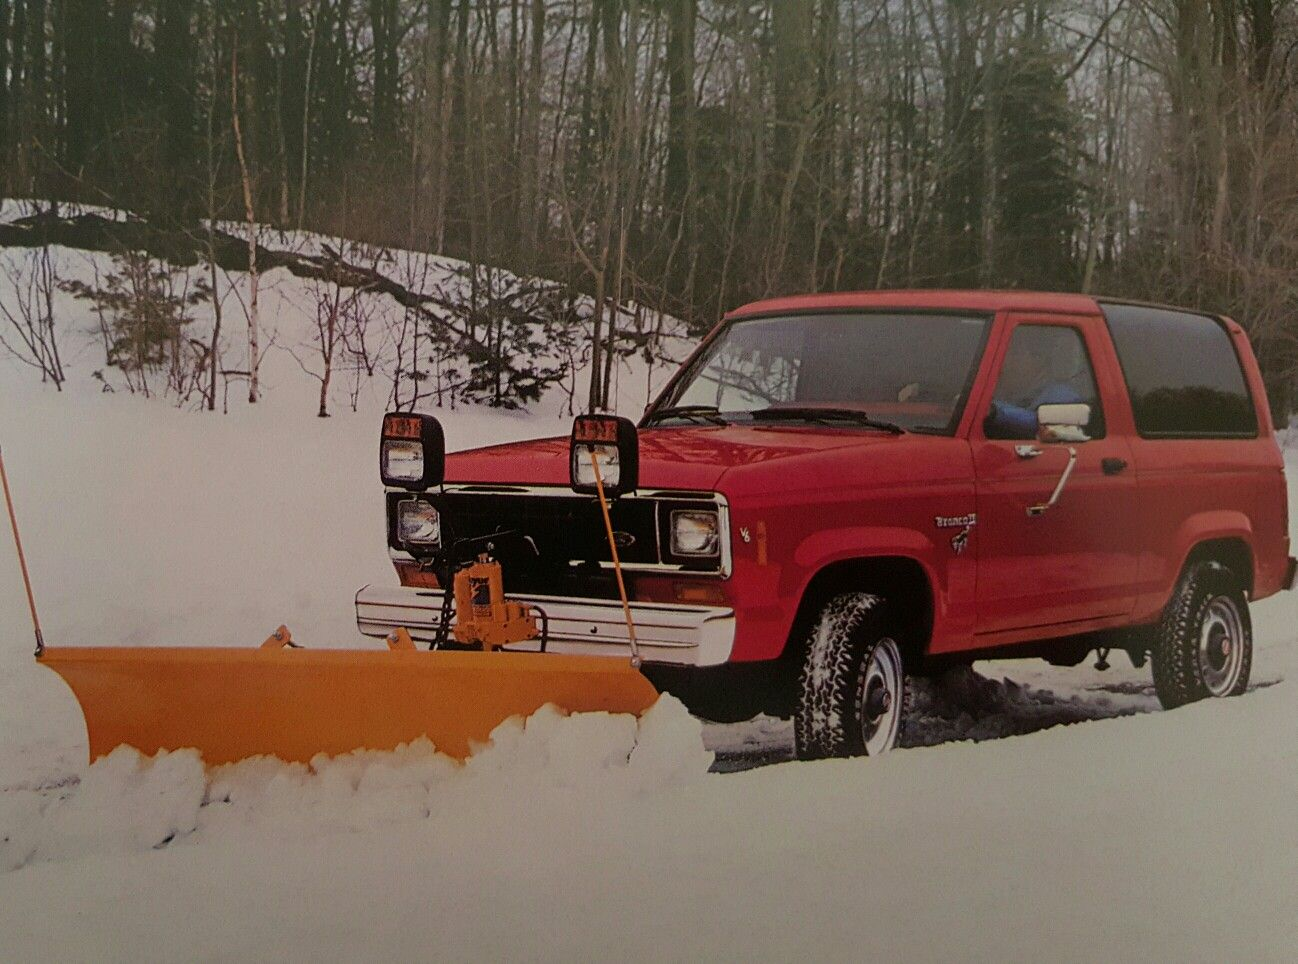 1985 Ford Bronco Ii With Snowplow Ford Bronco Bronco Ii Ford Bronco Ii